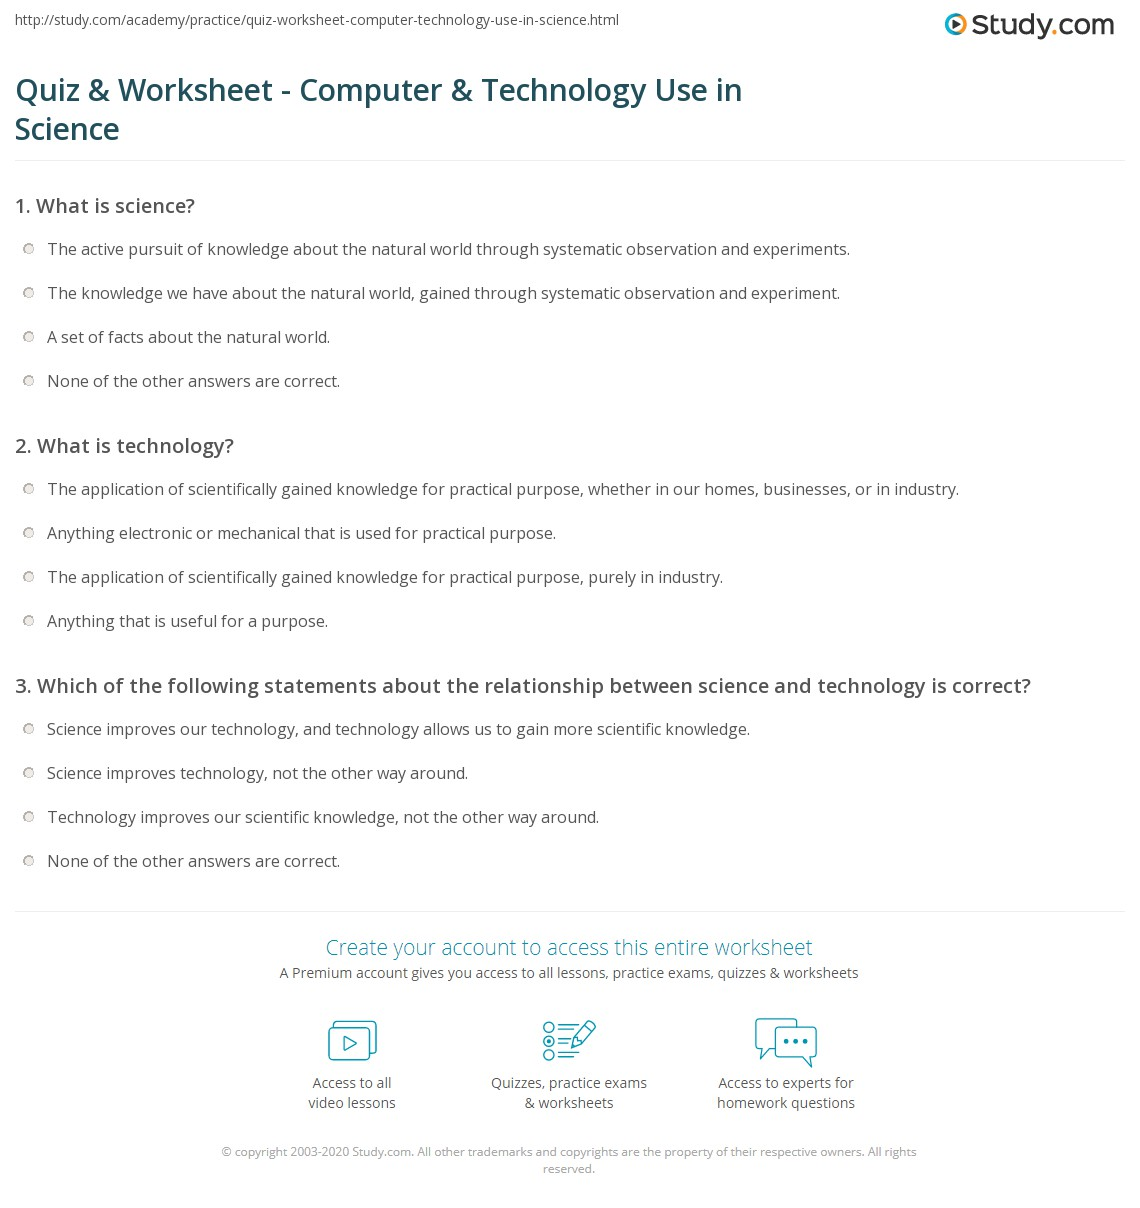 Quiz Worksheet Computer Technology Use In Science Study Com